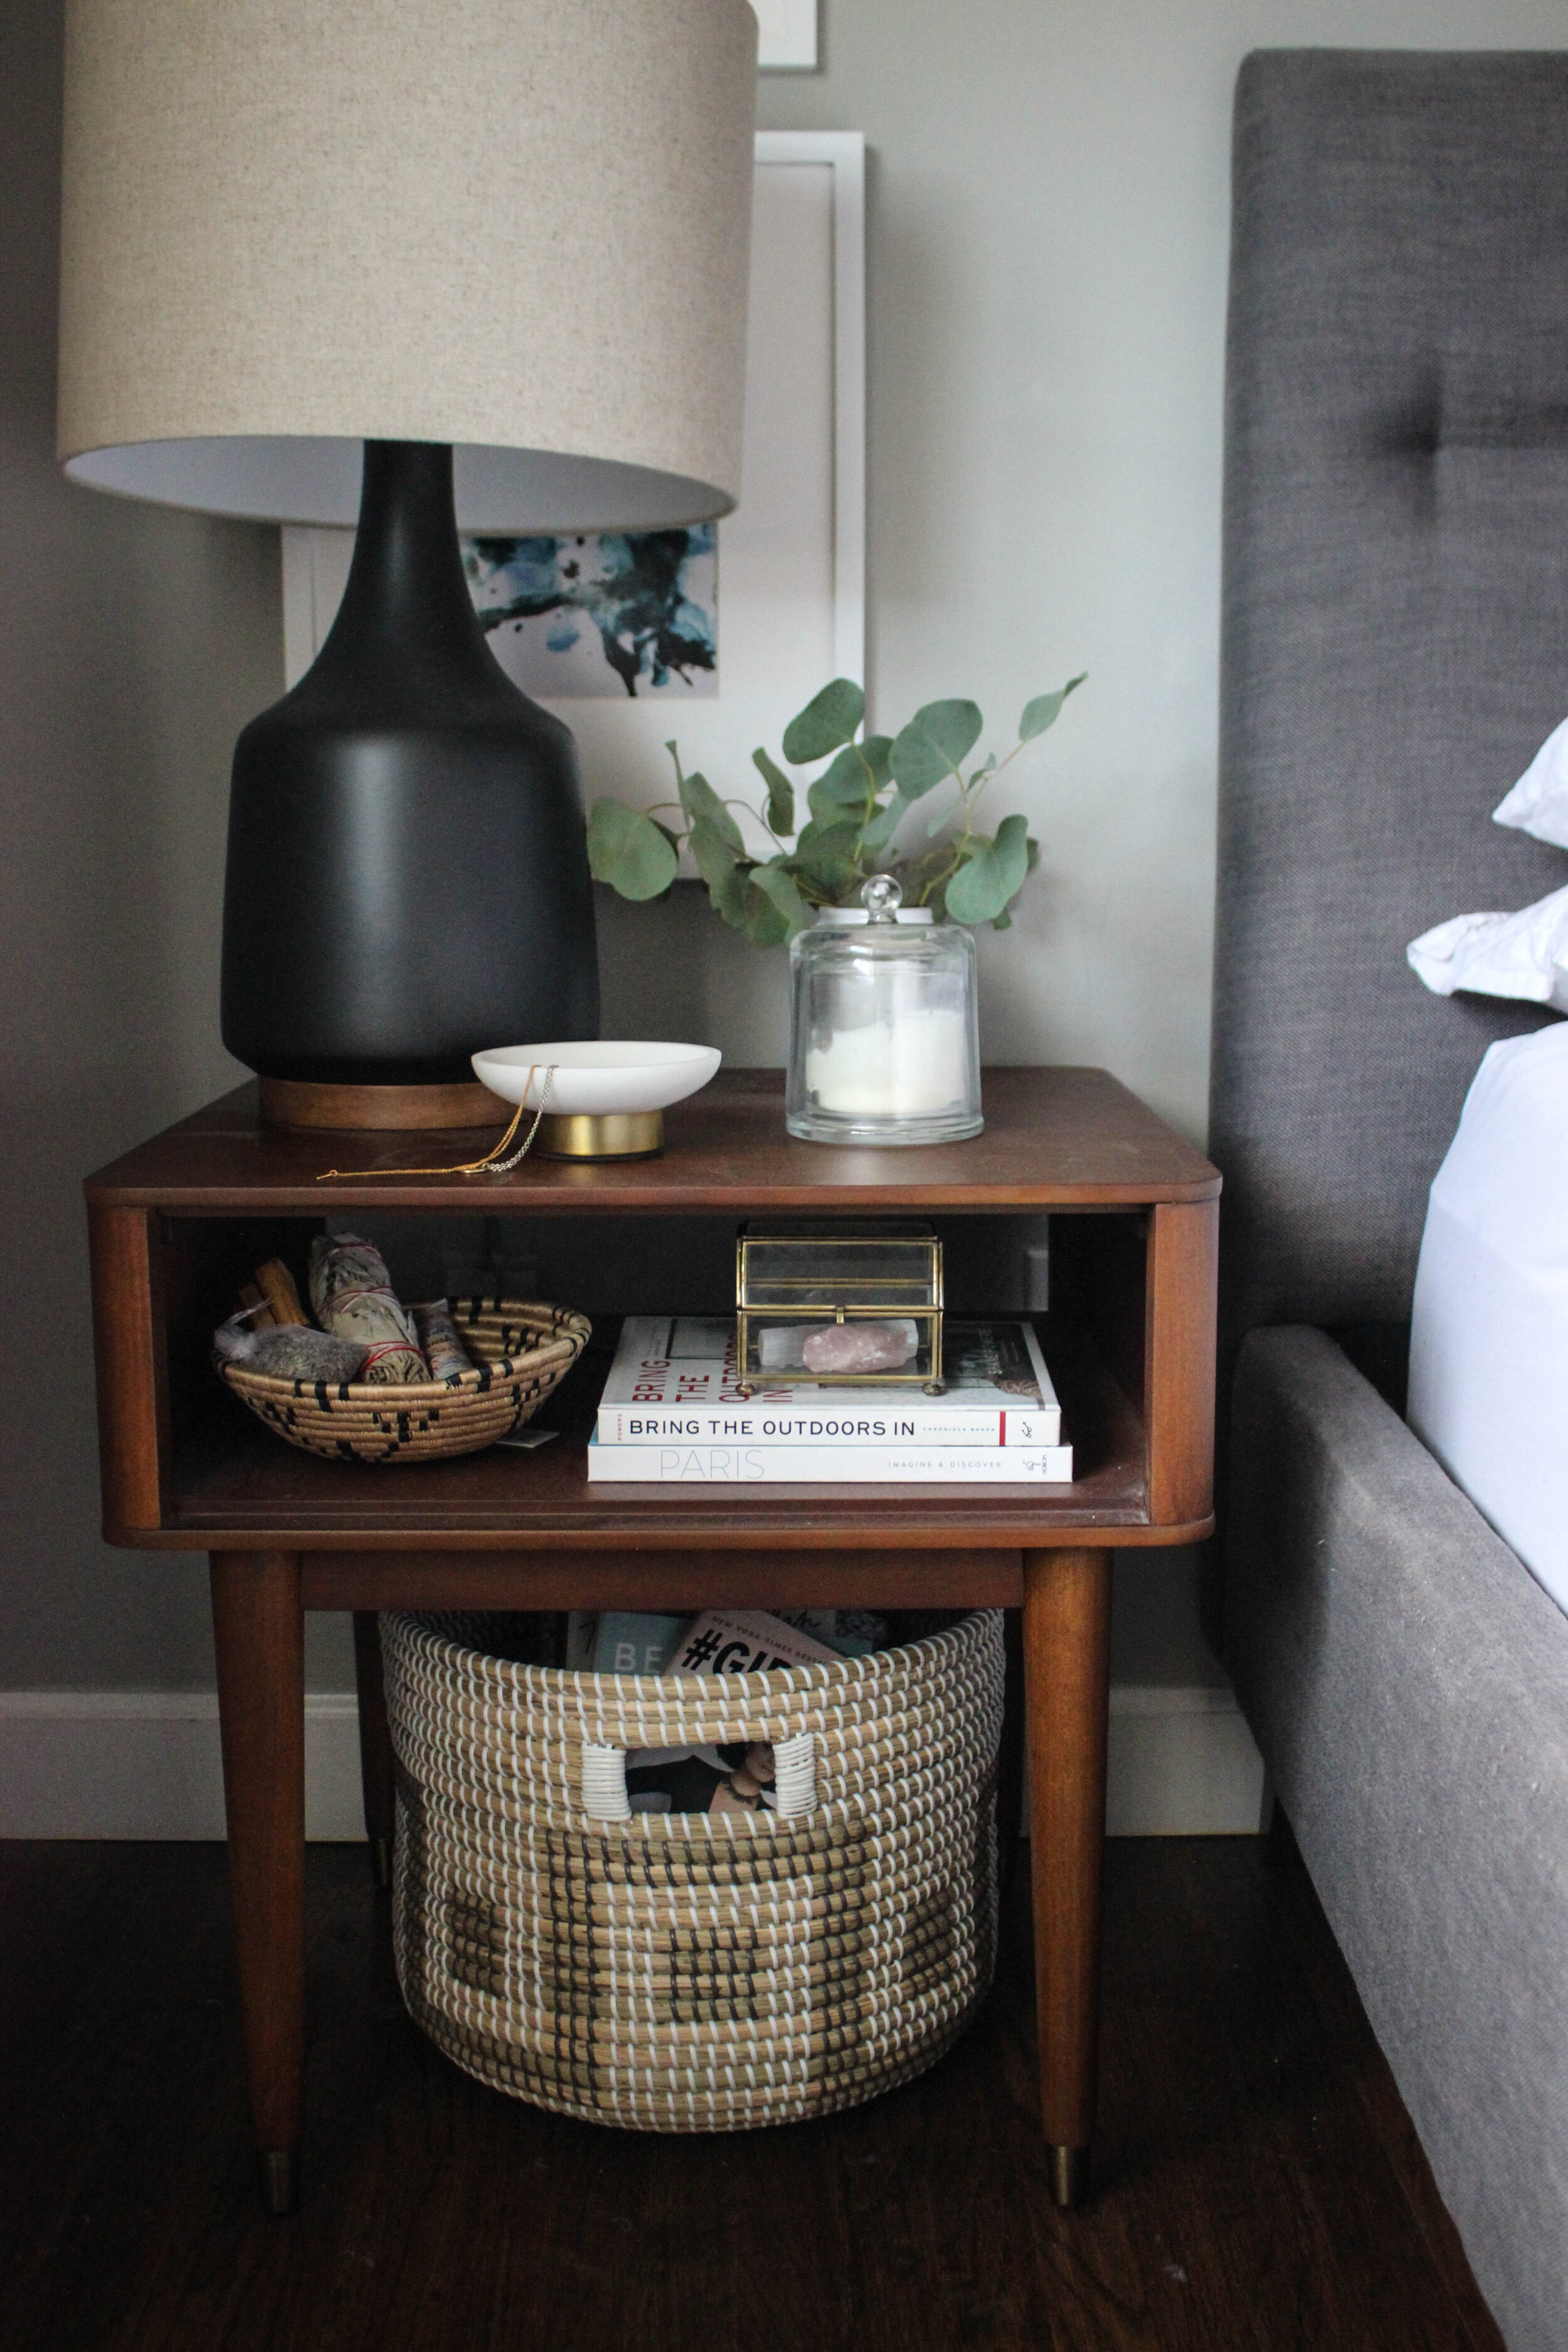 Small Home Style Baskets Are A Must Katrina Blair Interior Design Small Home Style Modern Livingkatrina Blair